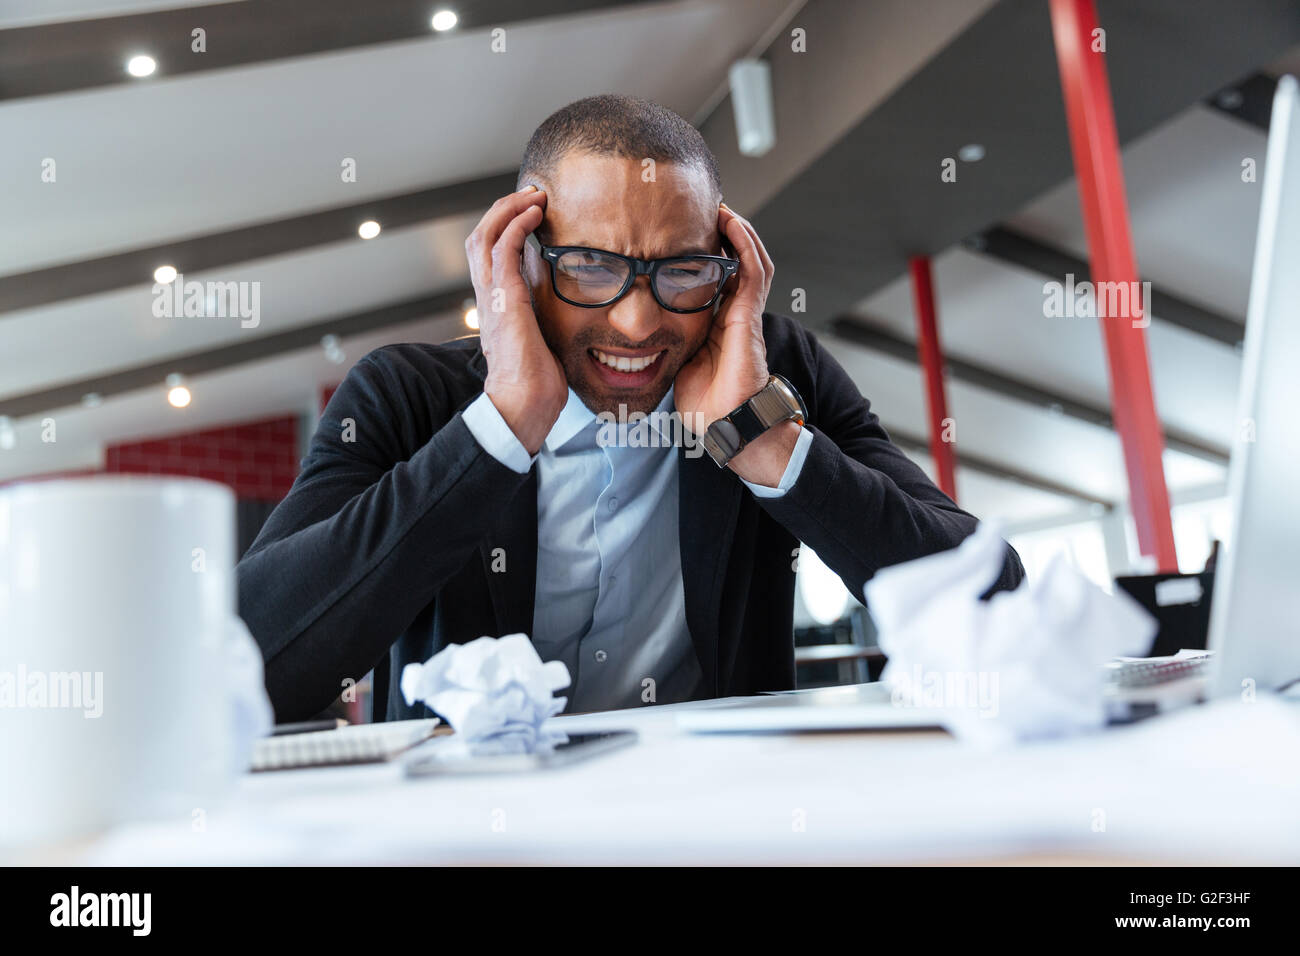 Exhausted businessman at work in the office - Stock Image